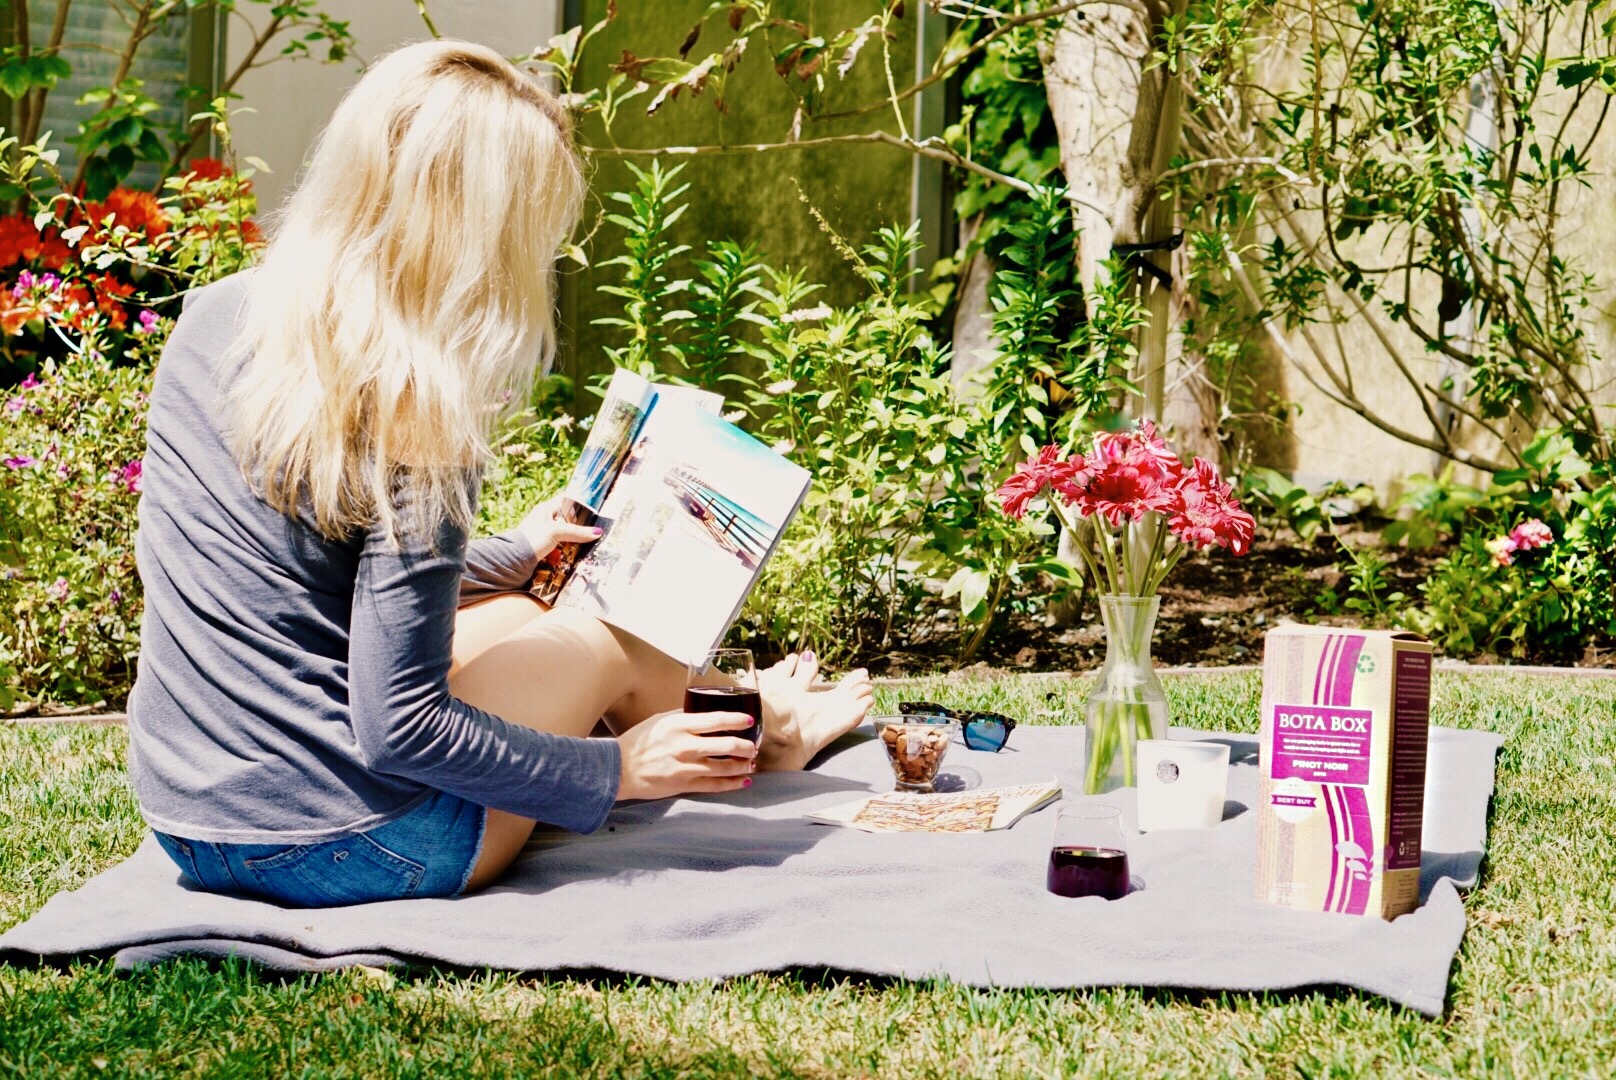 Backyard picnic!! While waiting for my friend to show up,I was able to catch up on some travel and cooking mags while sipping on some Bota Box Pinot Noir on a warm spring afternoon. The crisp and light Pinot was perfect for a sunny day picnic.